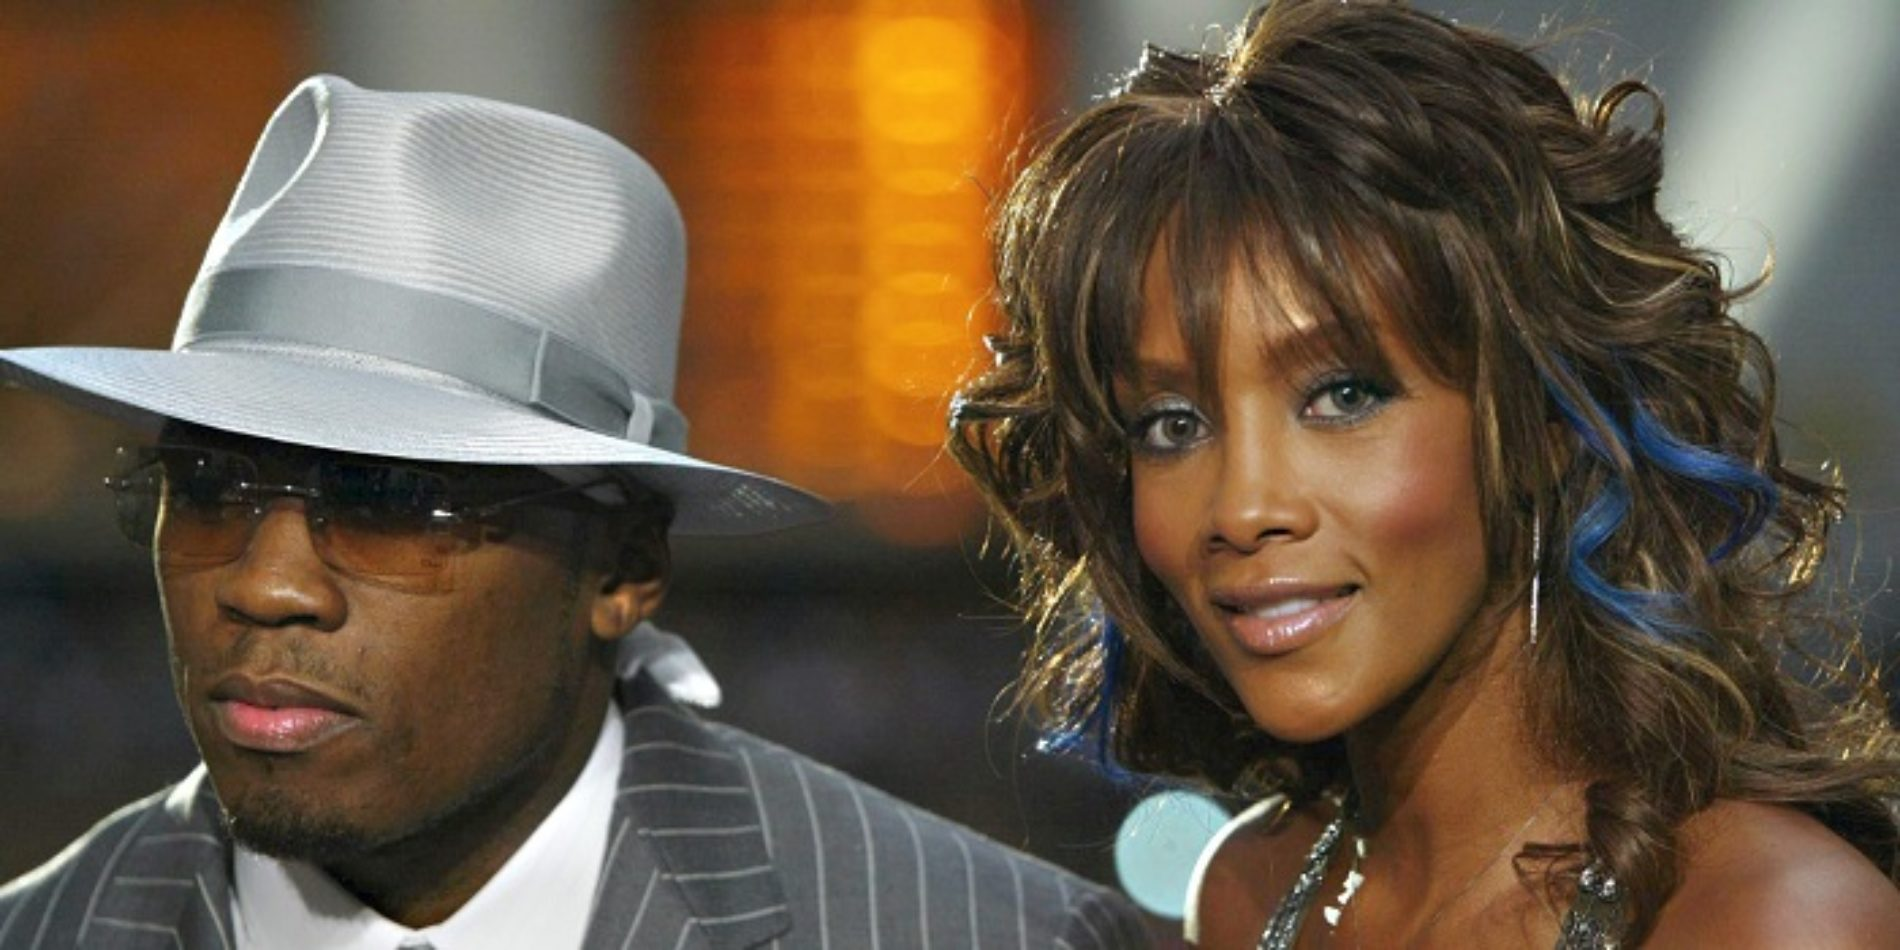 It's War Of The Shades Between Vivica Fox And 50 Cent